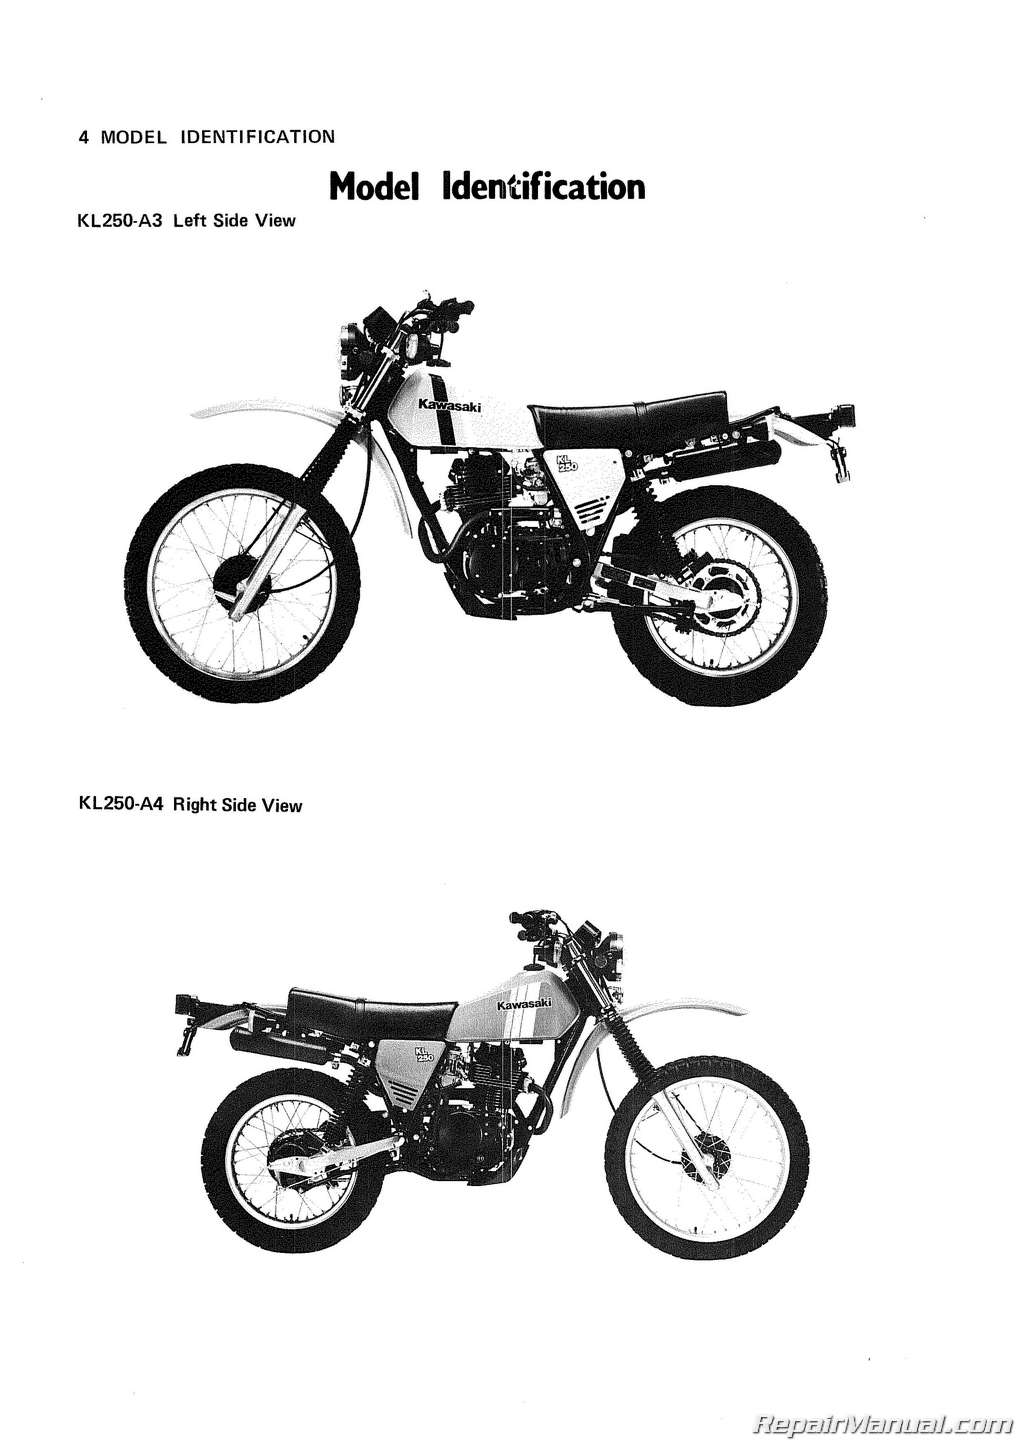 1982 kawasaki motorcycle kl250 owners manual